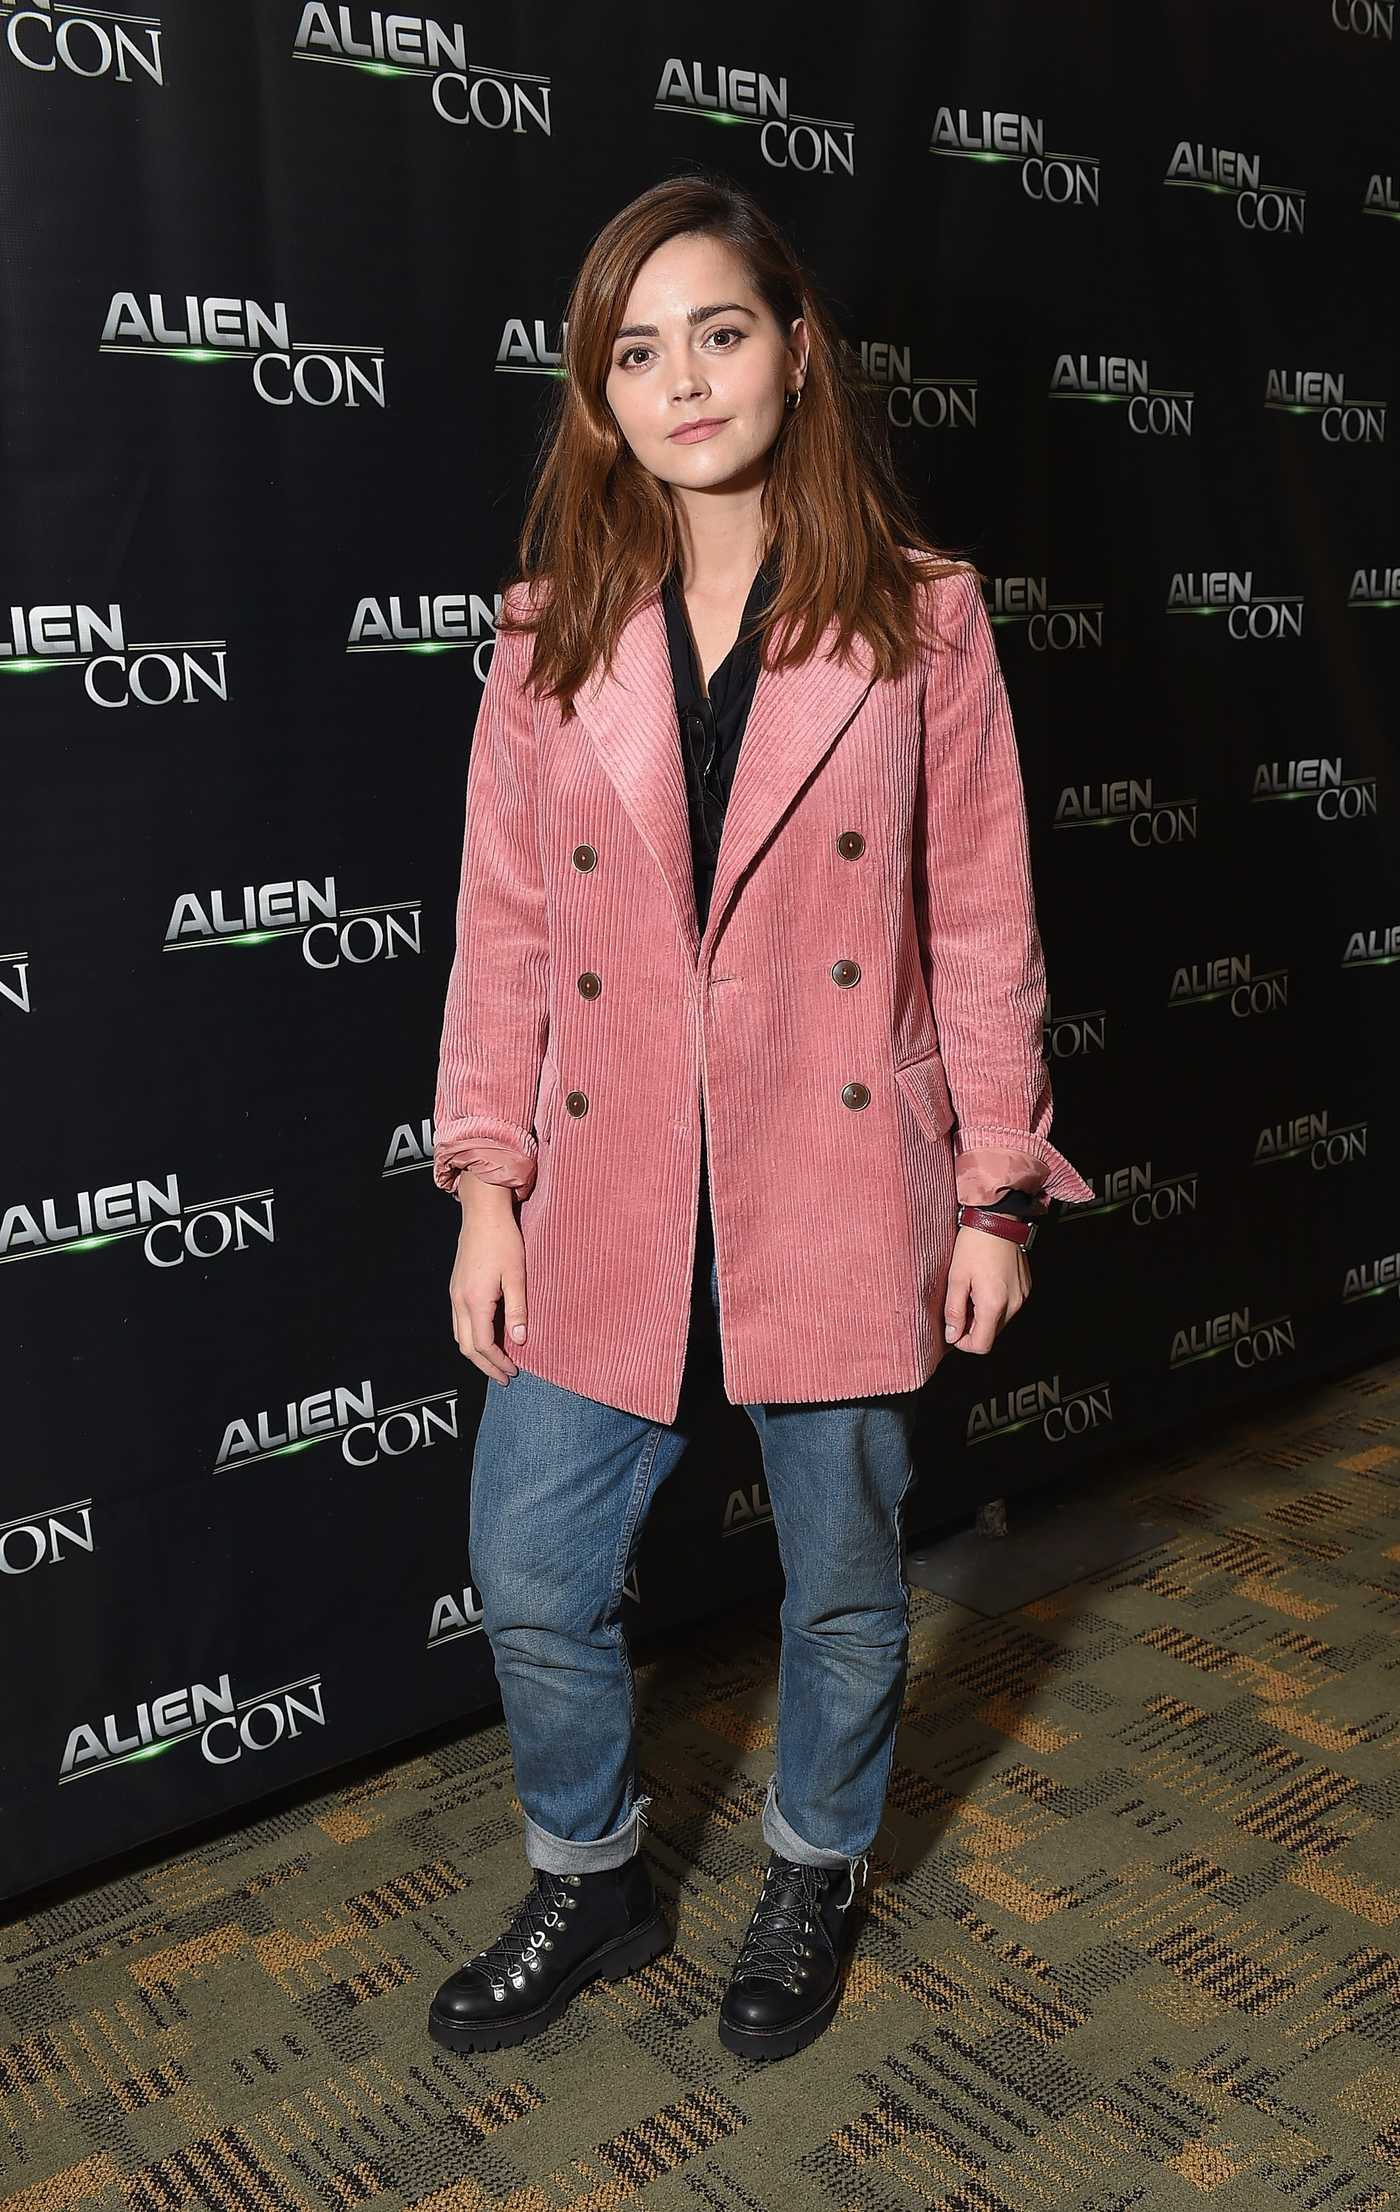 Jenna-Louise Coleman Attends 2018 AlienCon in Baltimore 11/09/2018